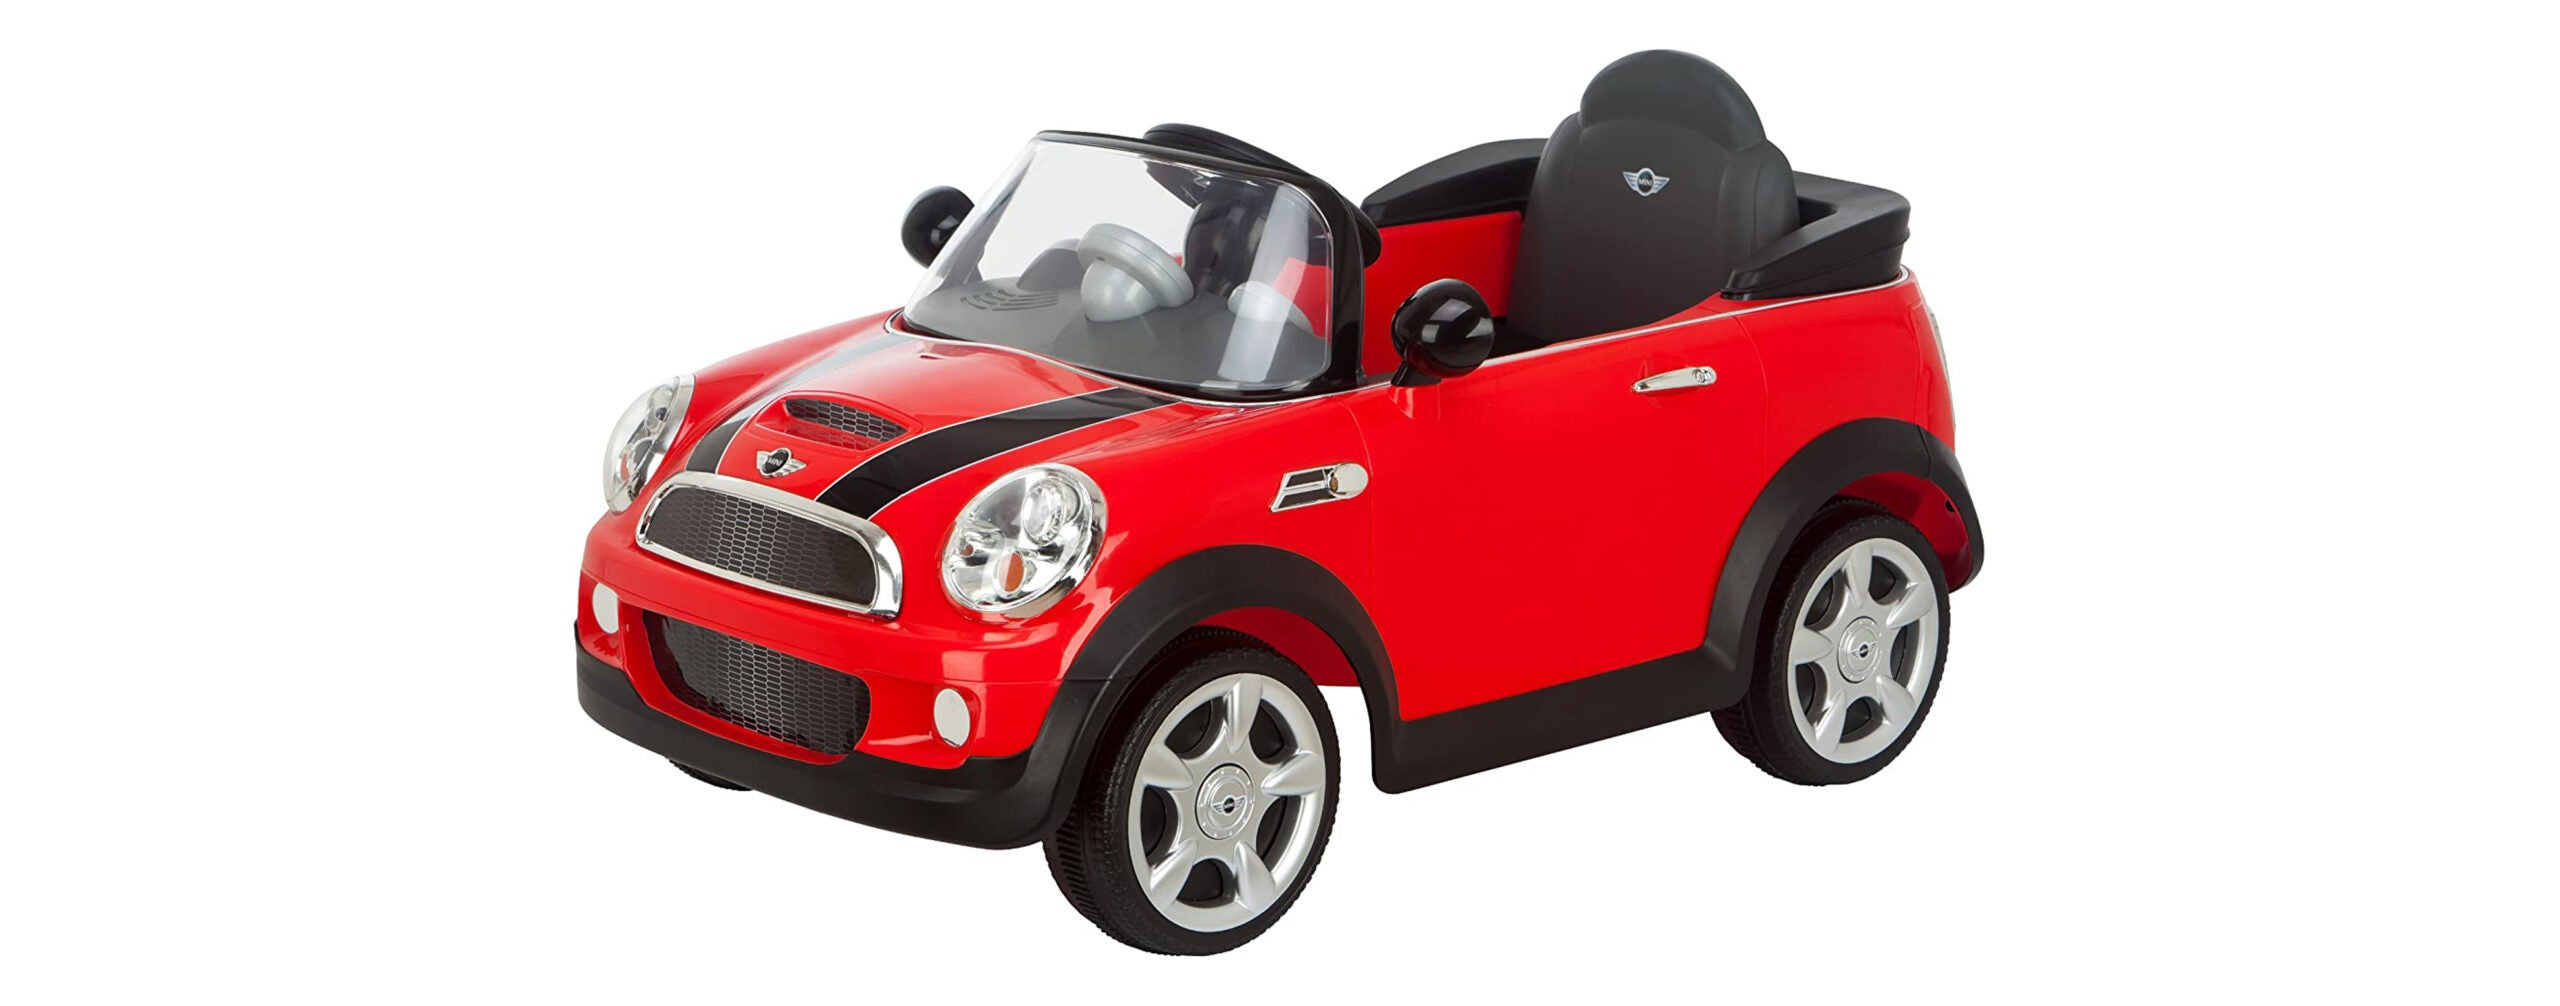 The Best Electric Car For Kids (Review & Buying Guide) in 2021